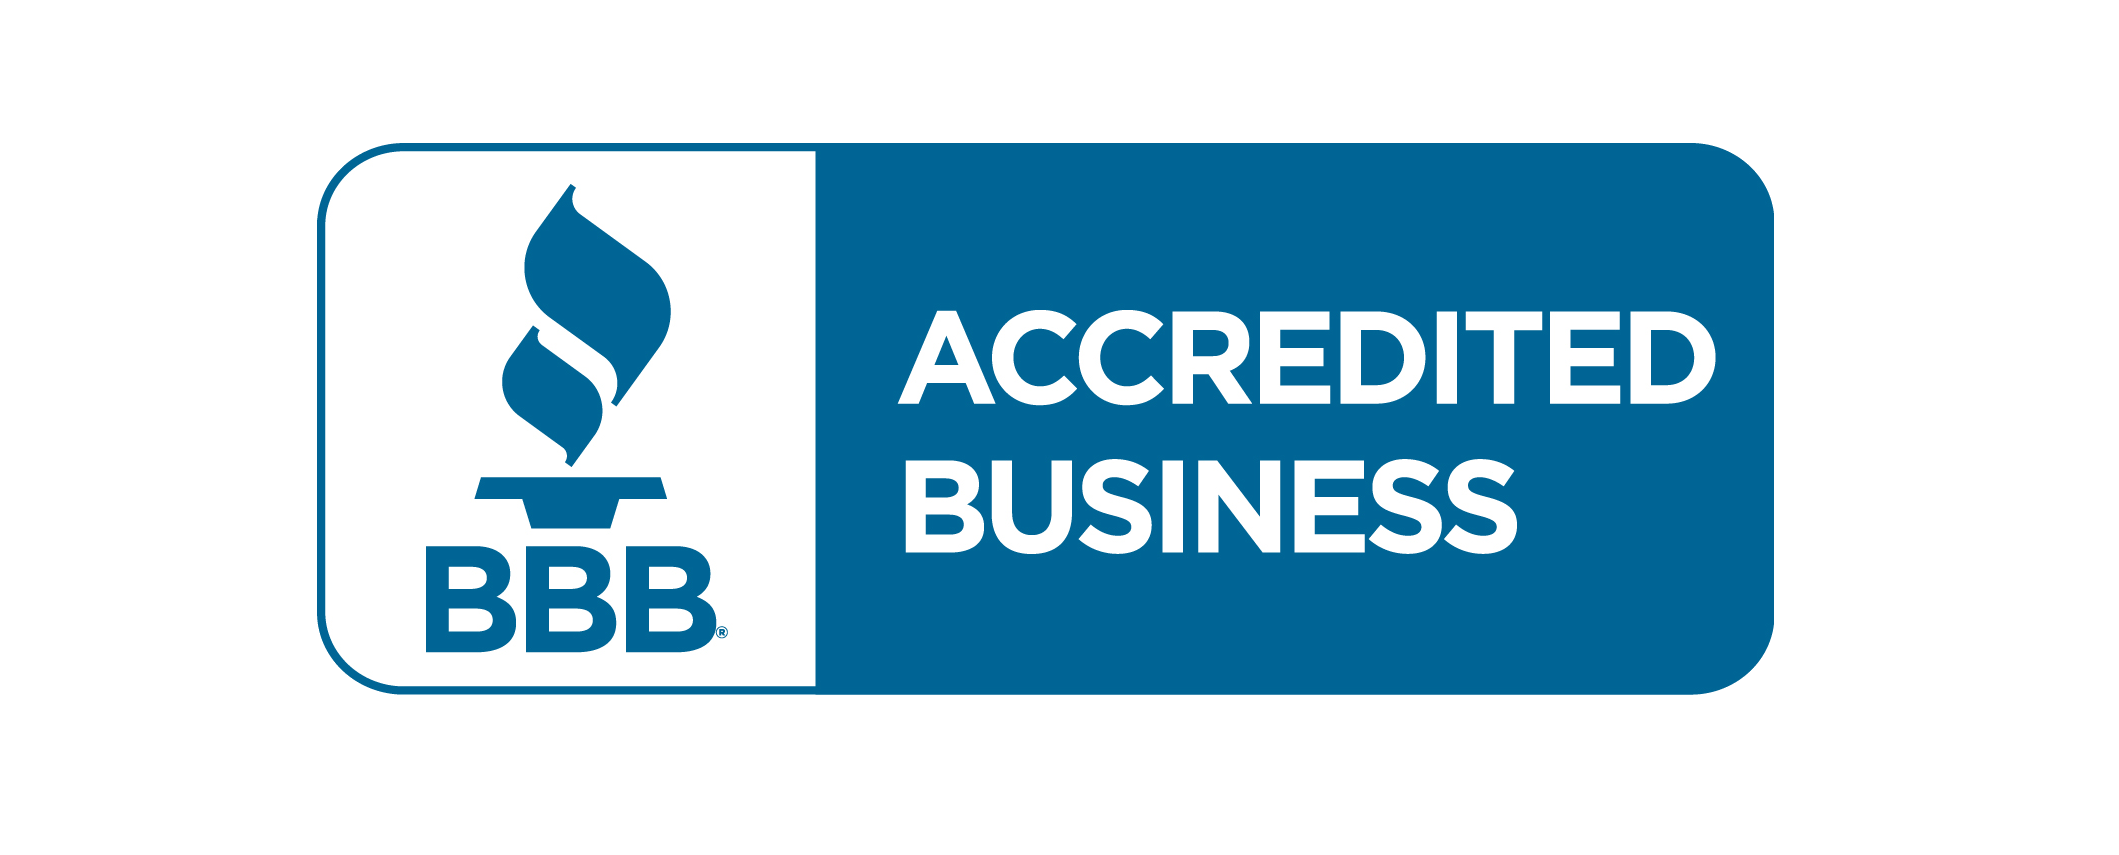 Bbb logo png. Comforcare bbblogopng